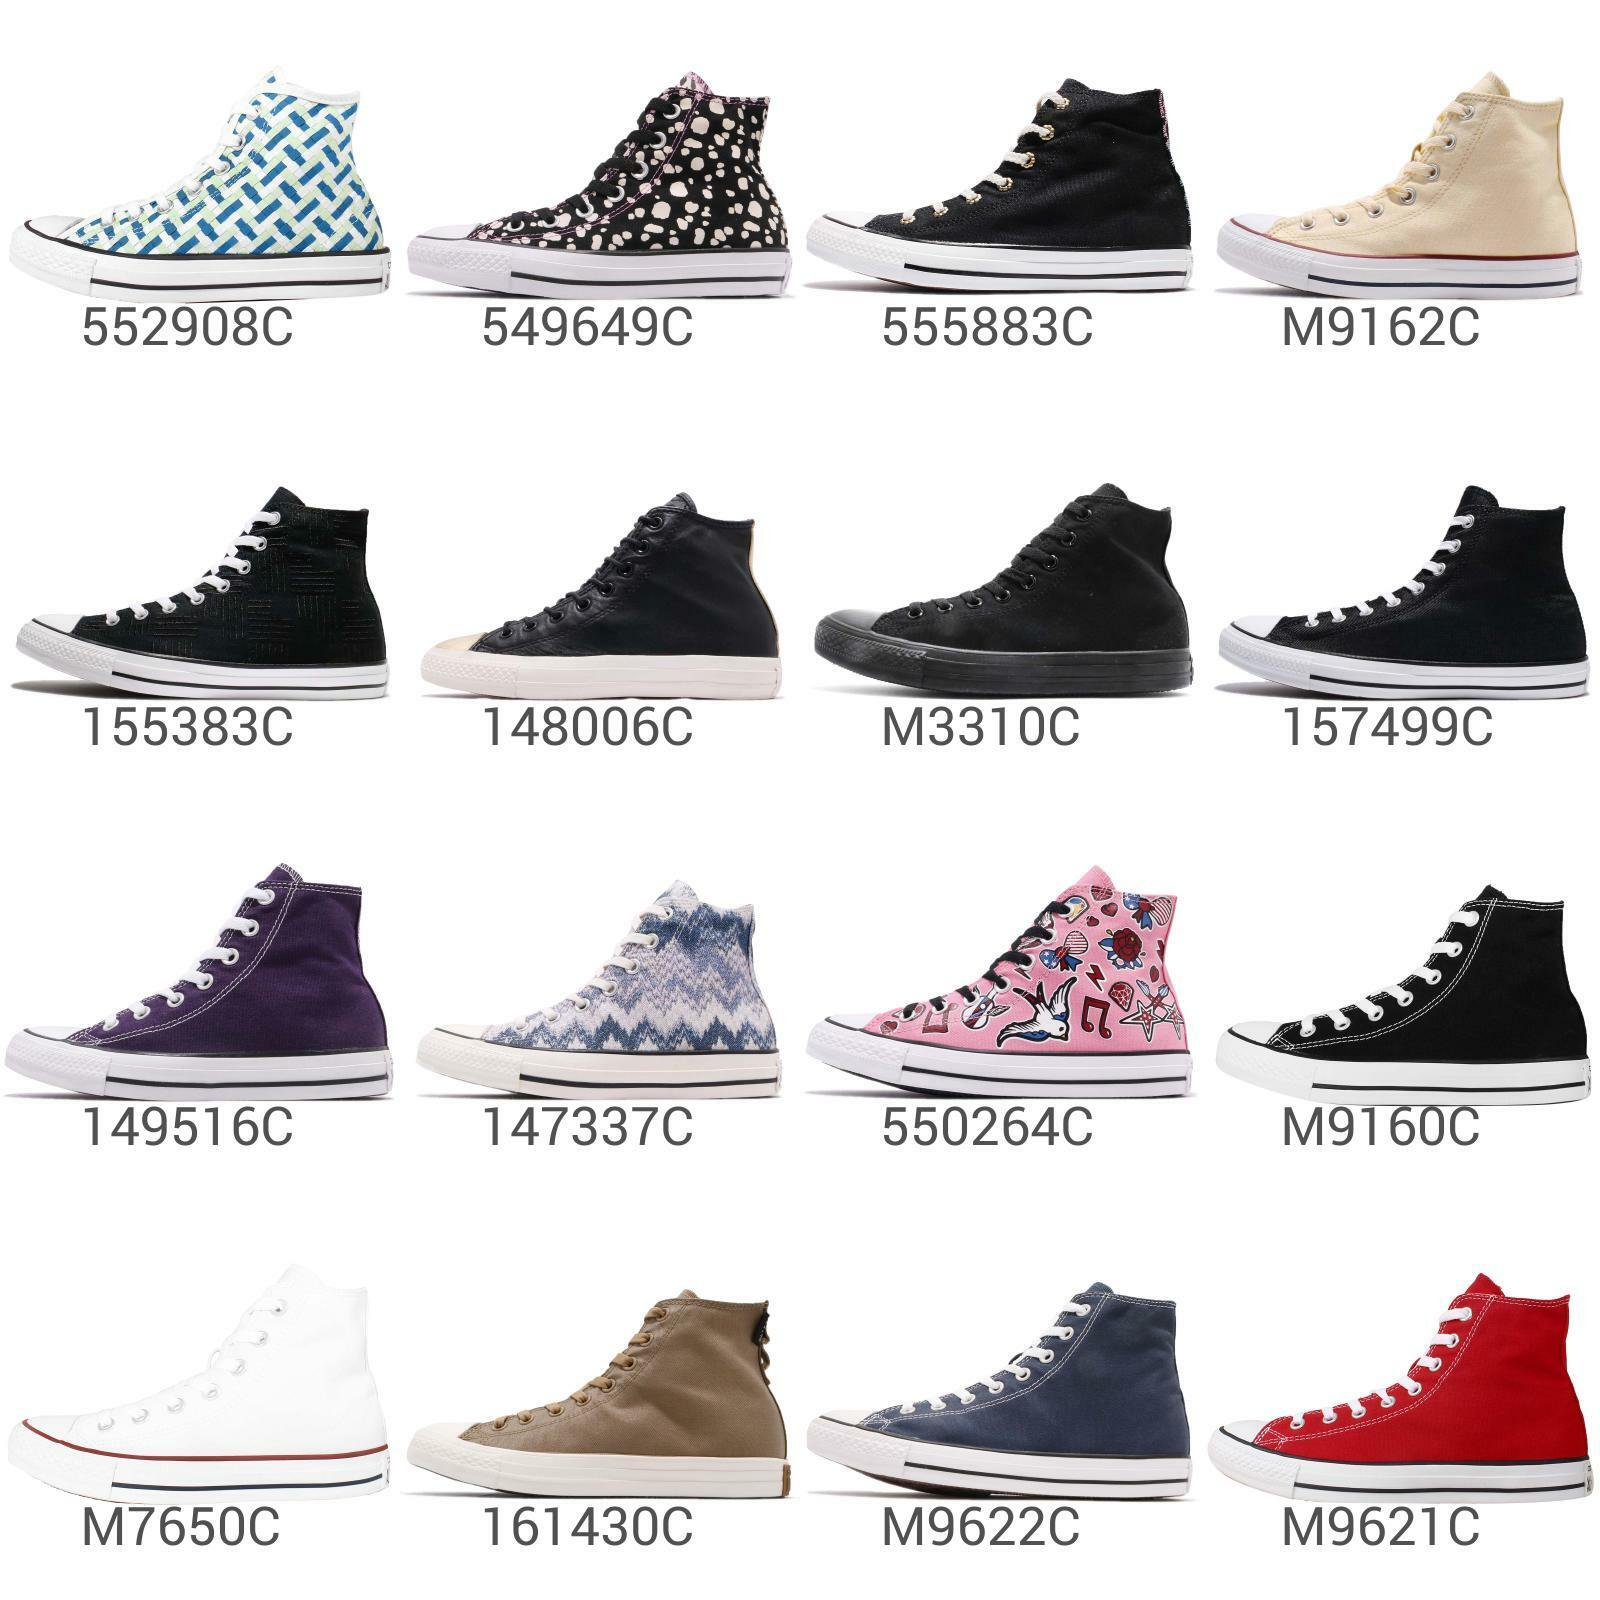 Converse Chuck Taylor All Star Hommes femmes High Hi Classic chaussures paniers Pick 1